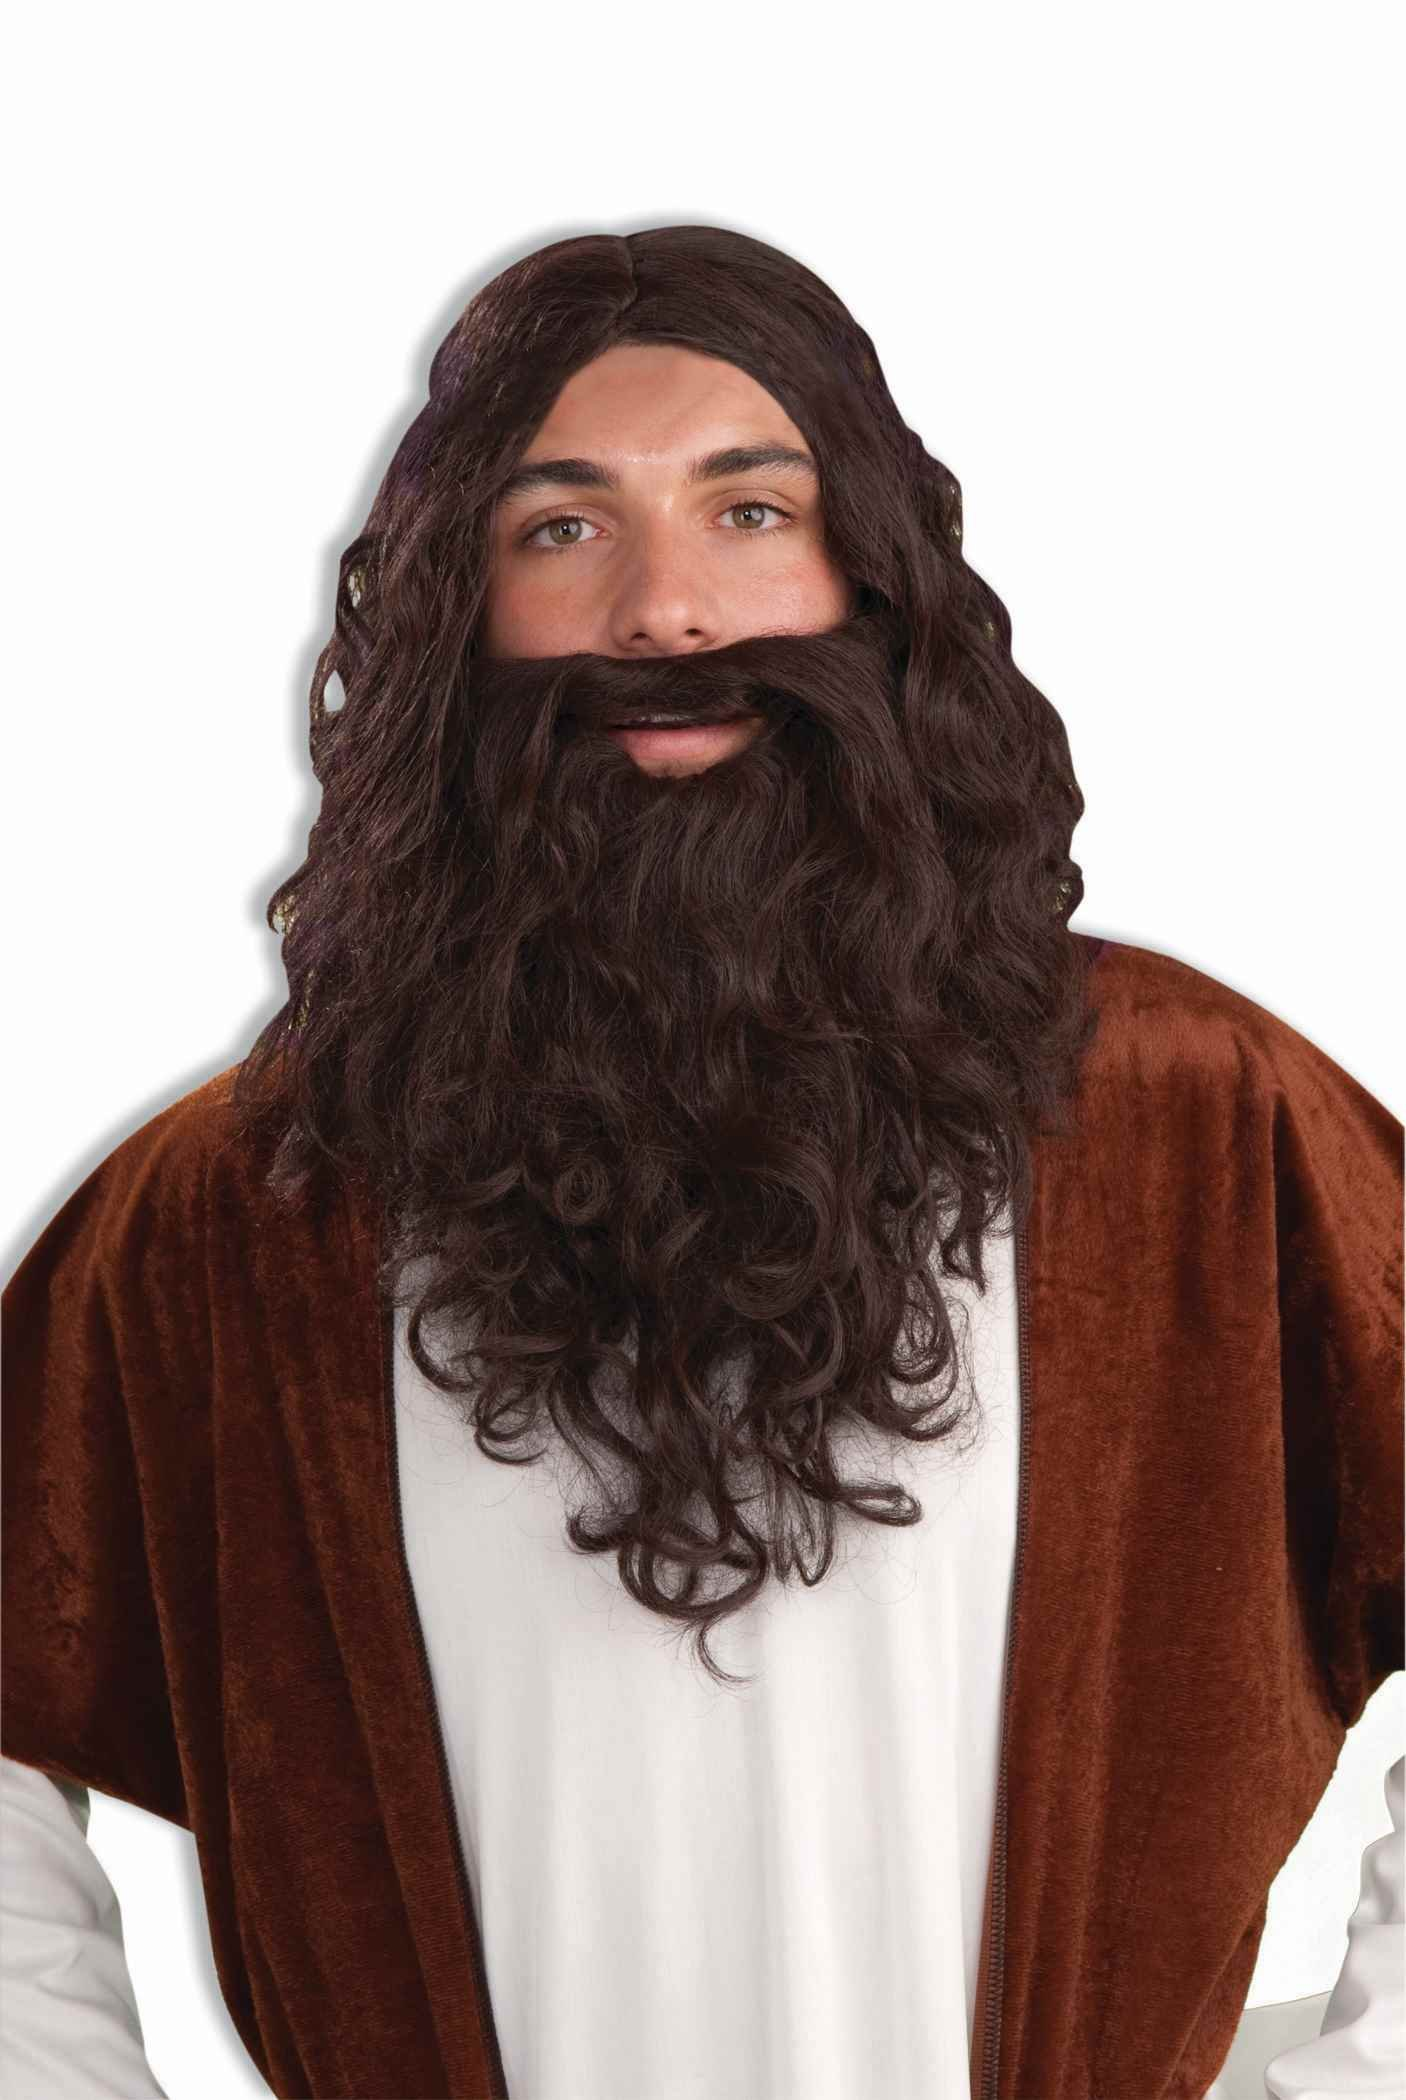 Forum Biblical Wig and Beard Set, Brown, One Size